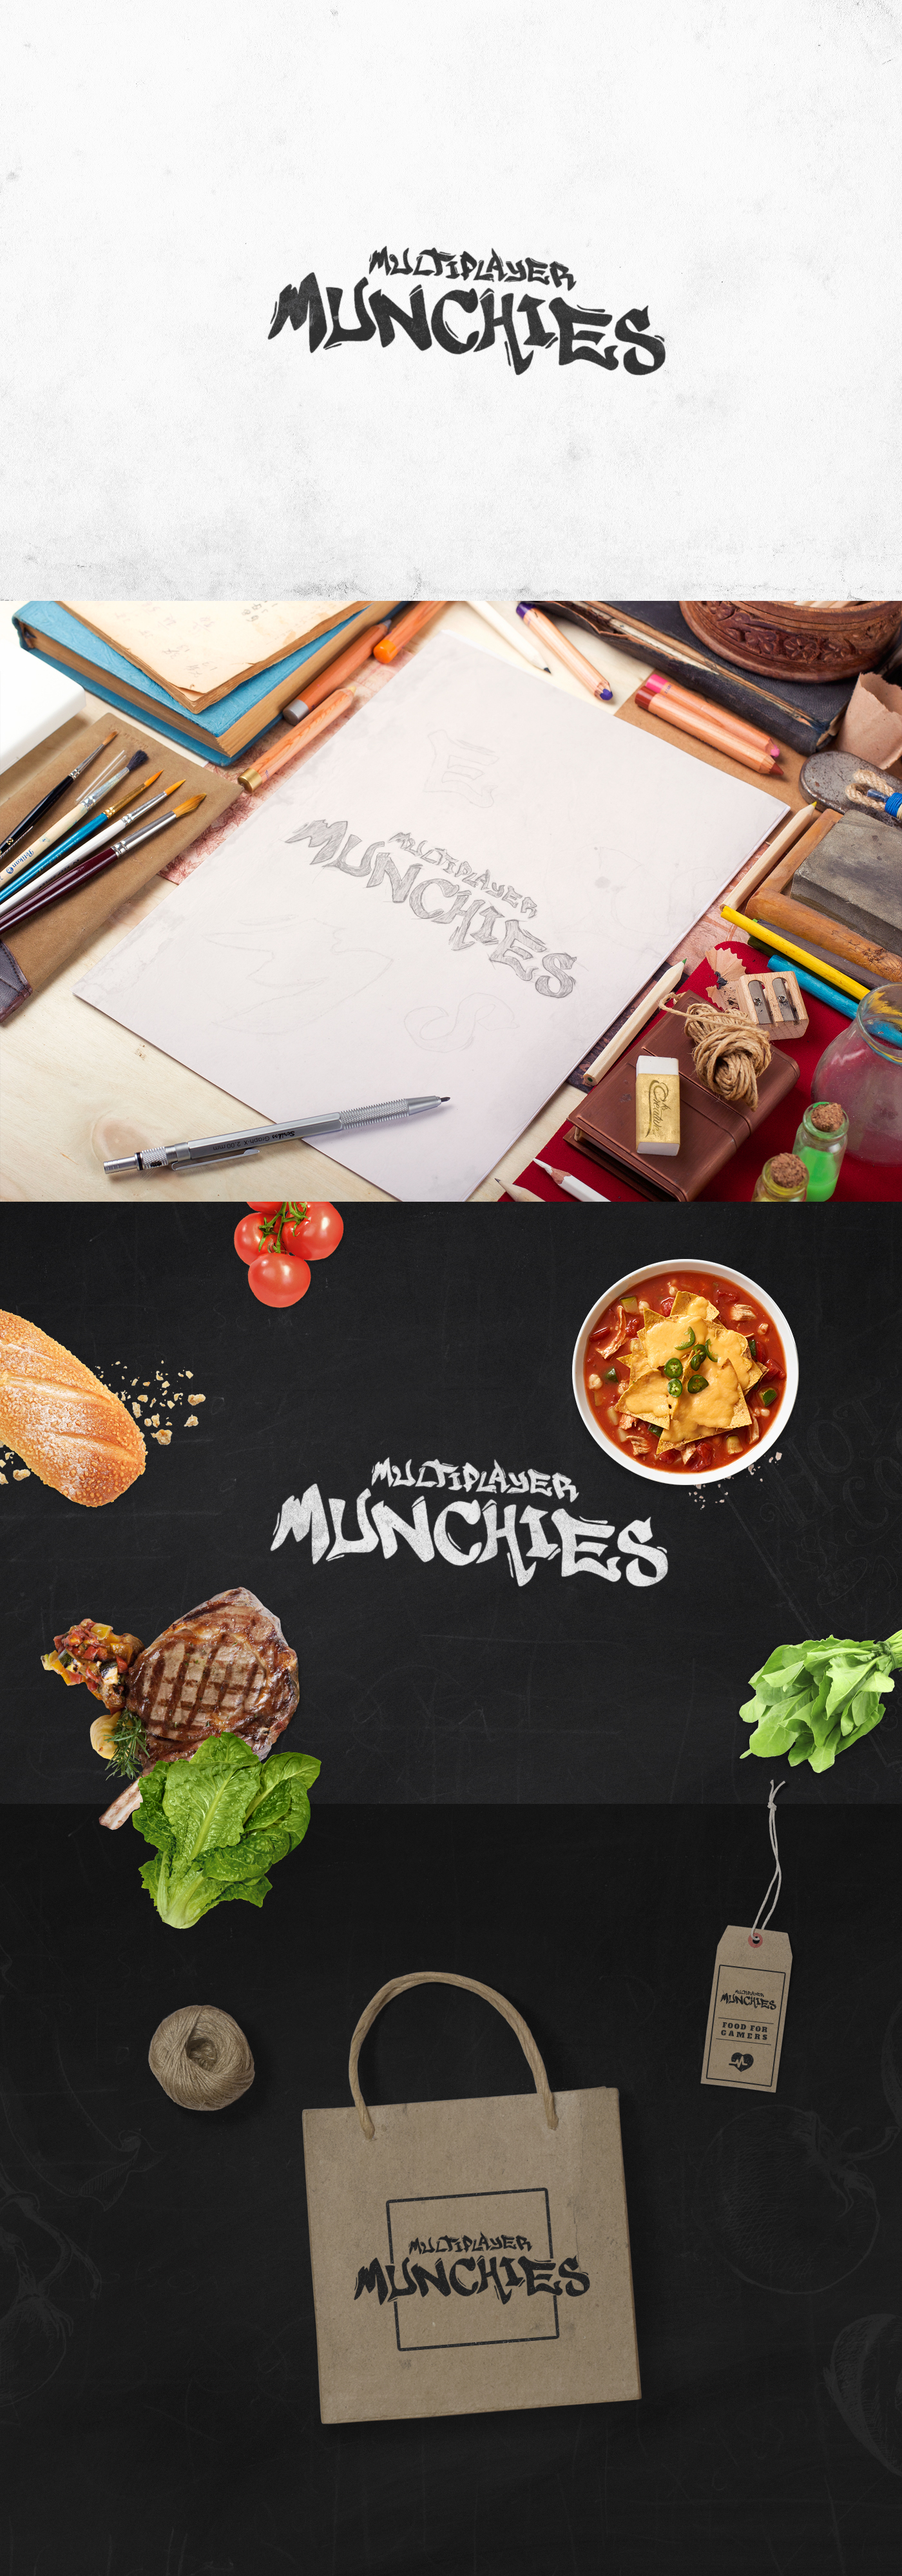 Multiplayer Munchies by kristaps-design